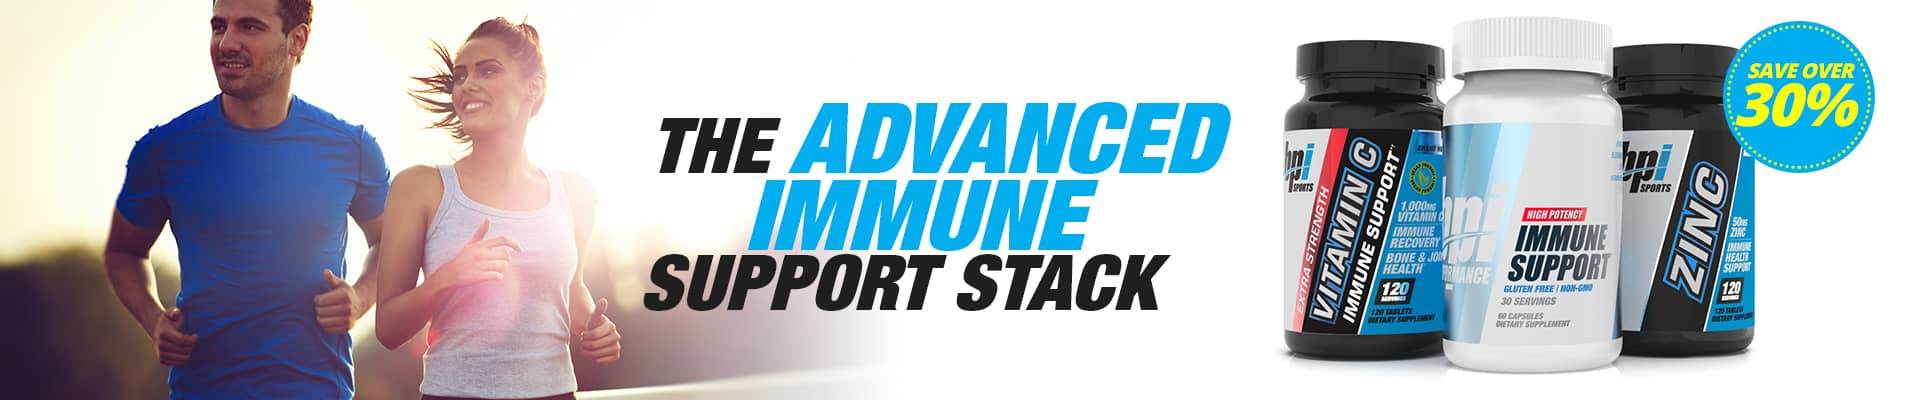 Advanced Immune Support Stack Promo